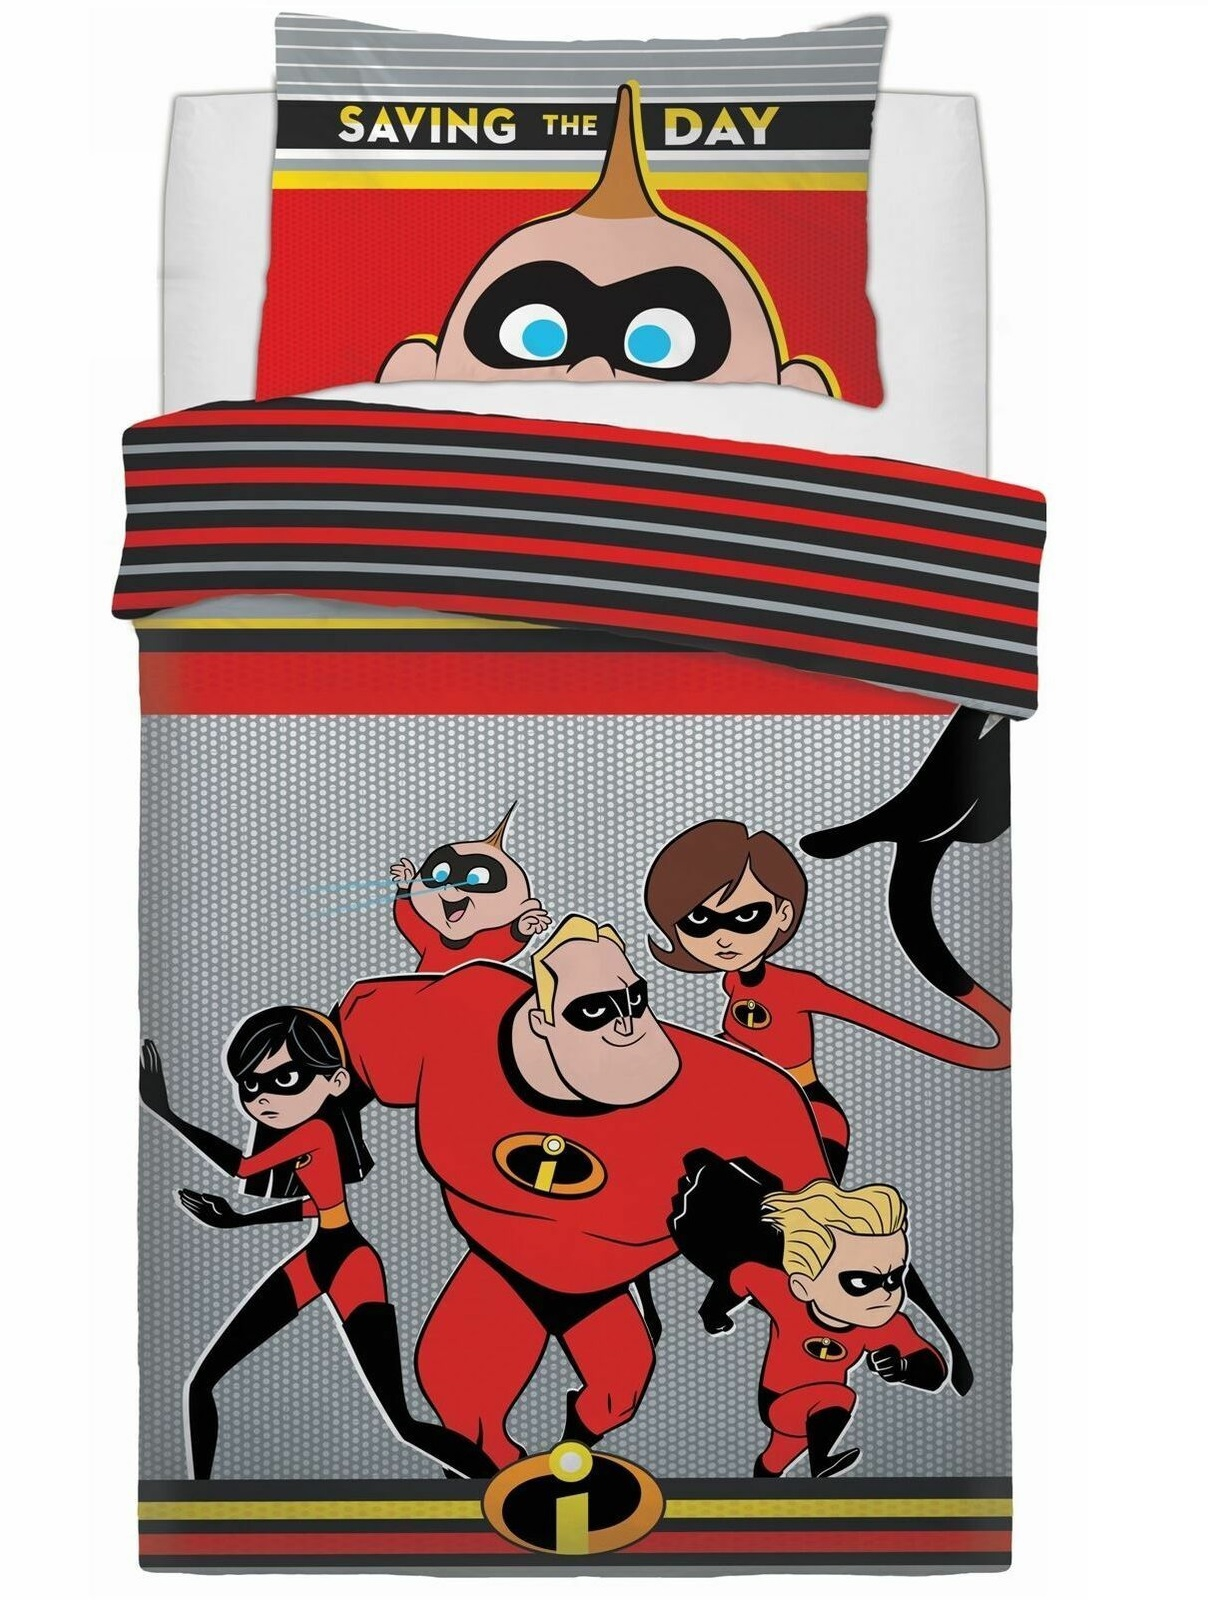 Disney Incredibles Saving The Day Reversible Panel Single Bed Duvet Quilt Cover Set